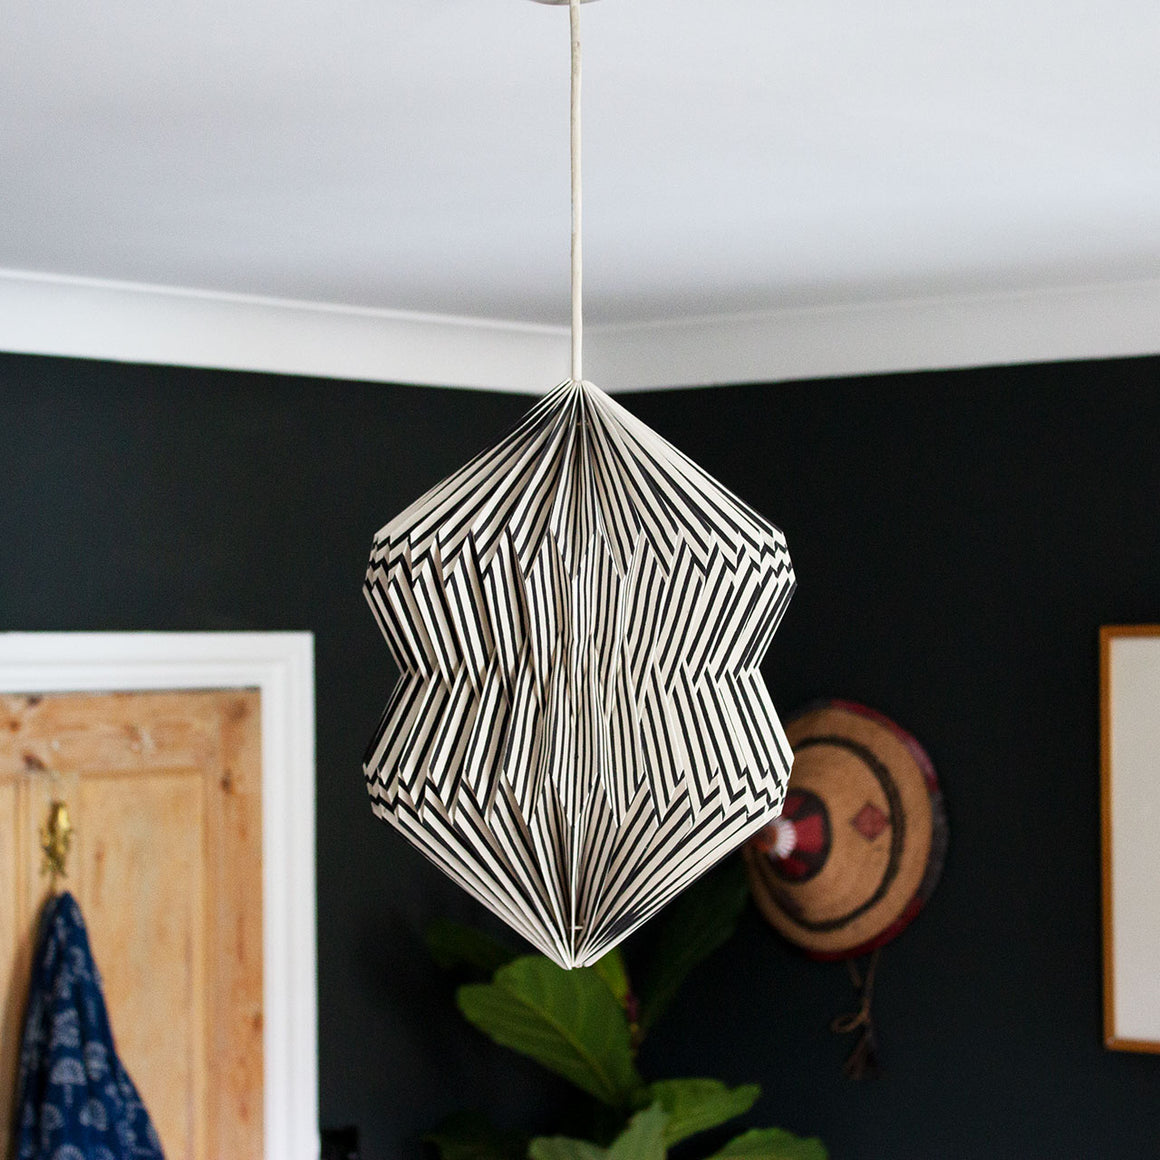 Indian Recycled Paper Diablo Light Shade 'Black and White Stripes'